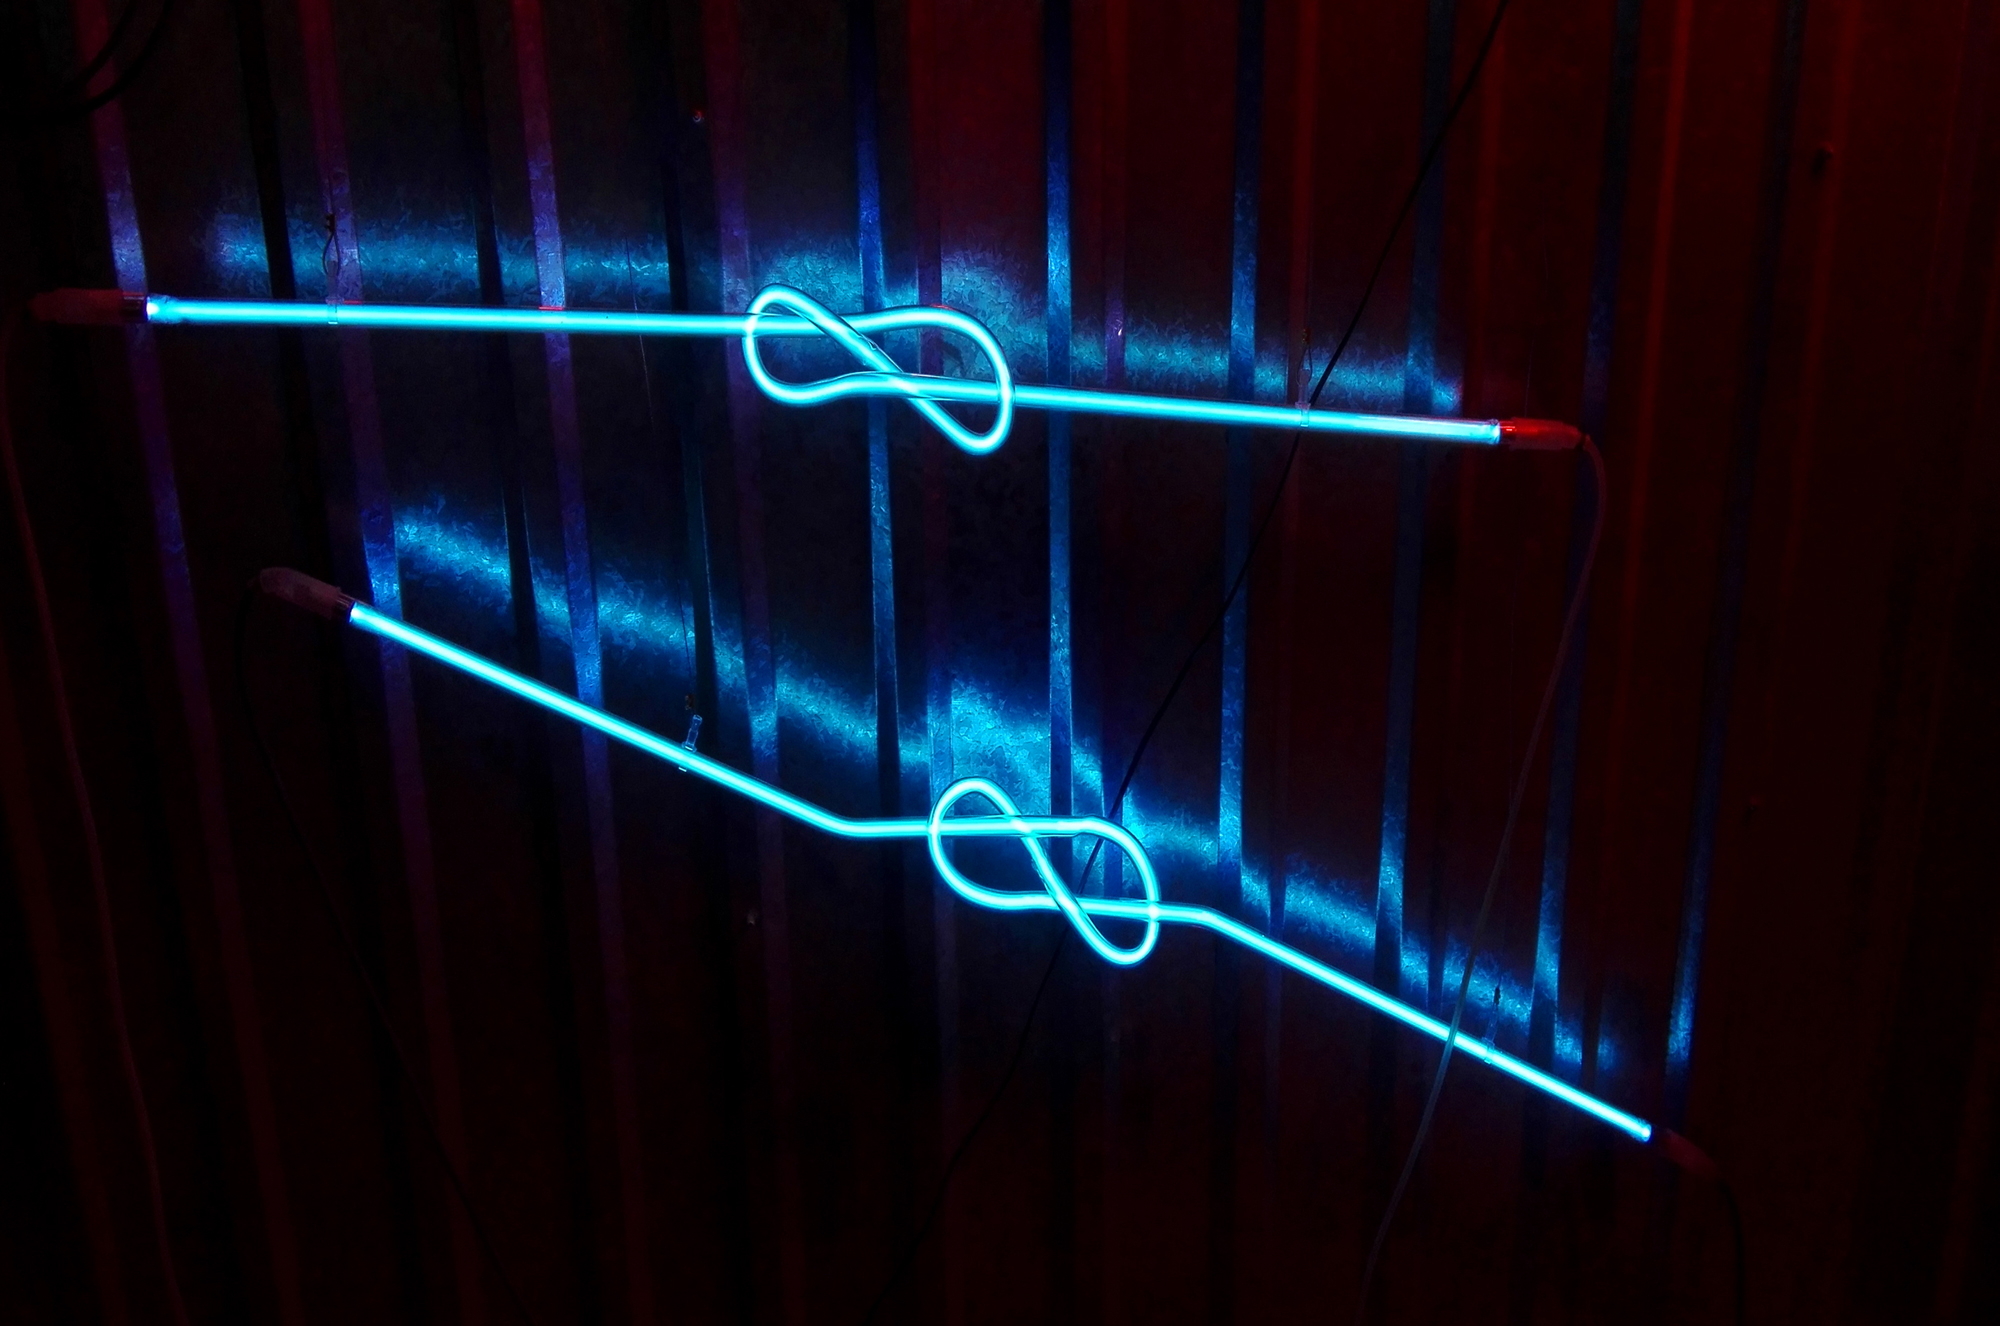 Polish neon art with blue light